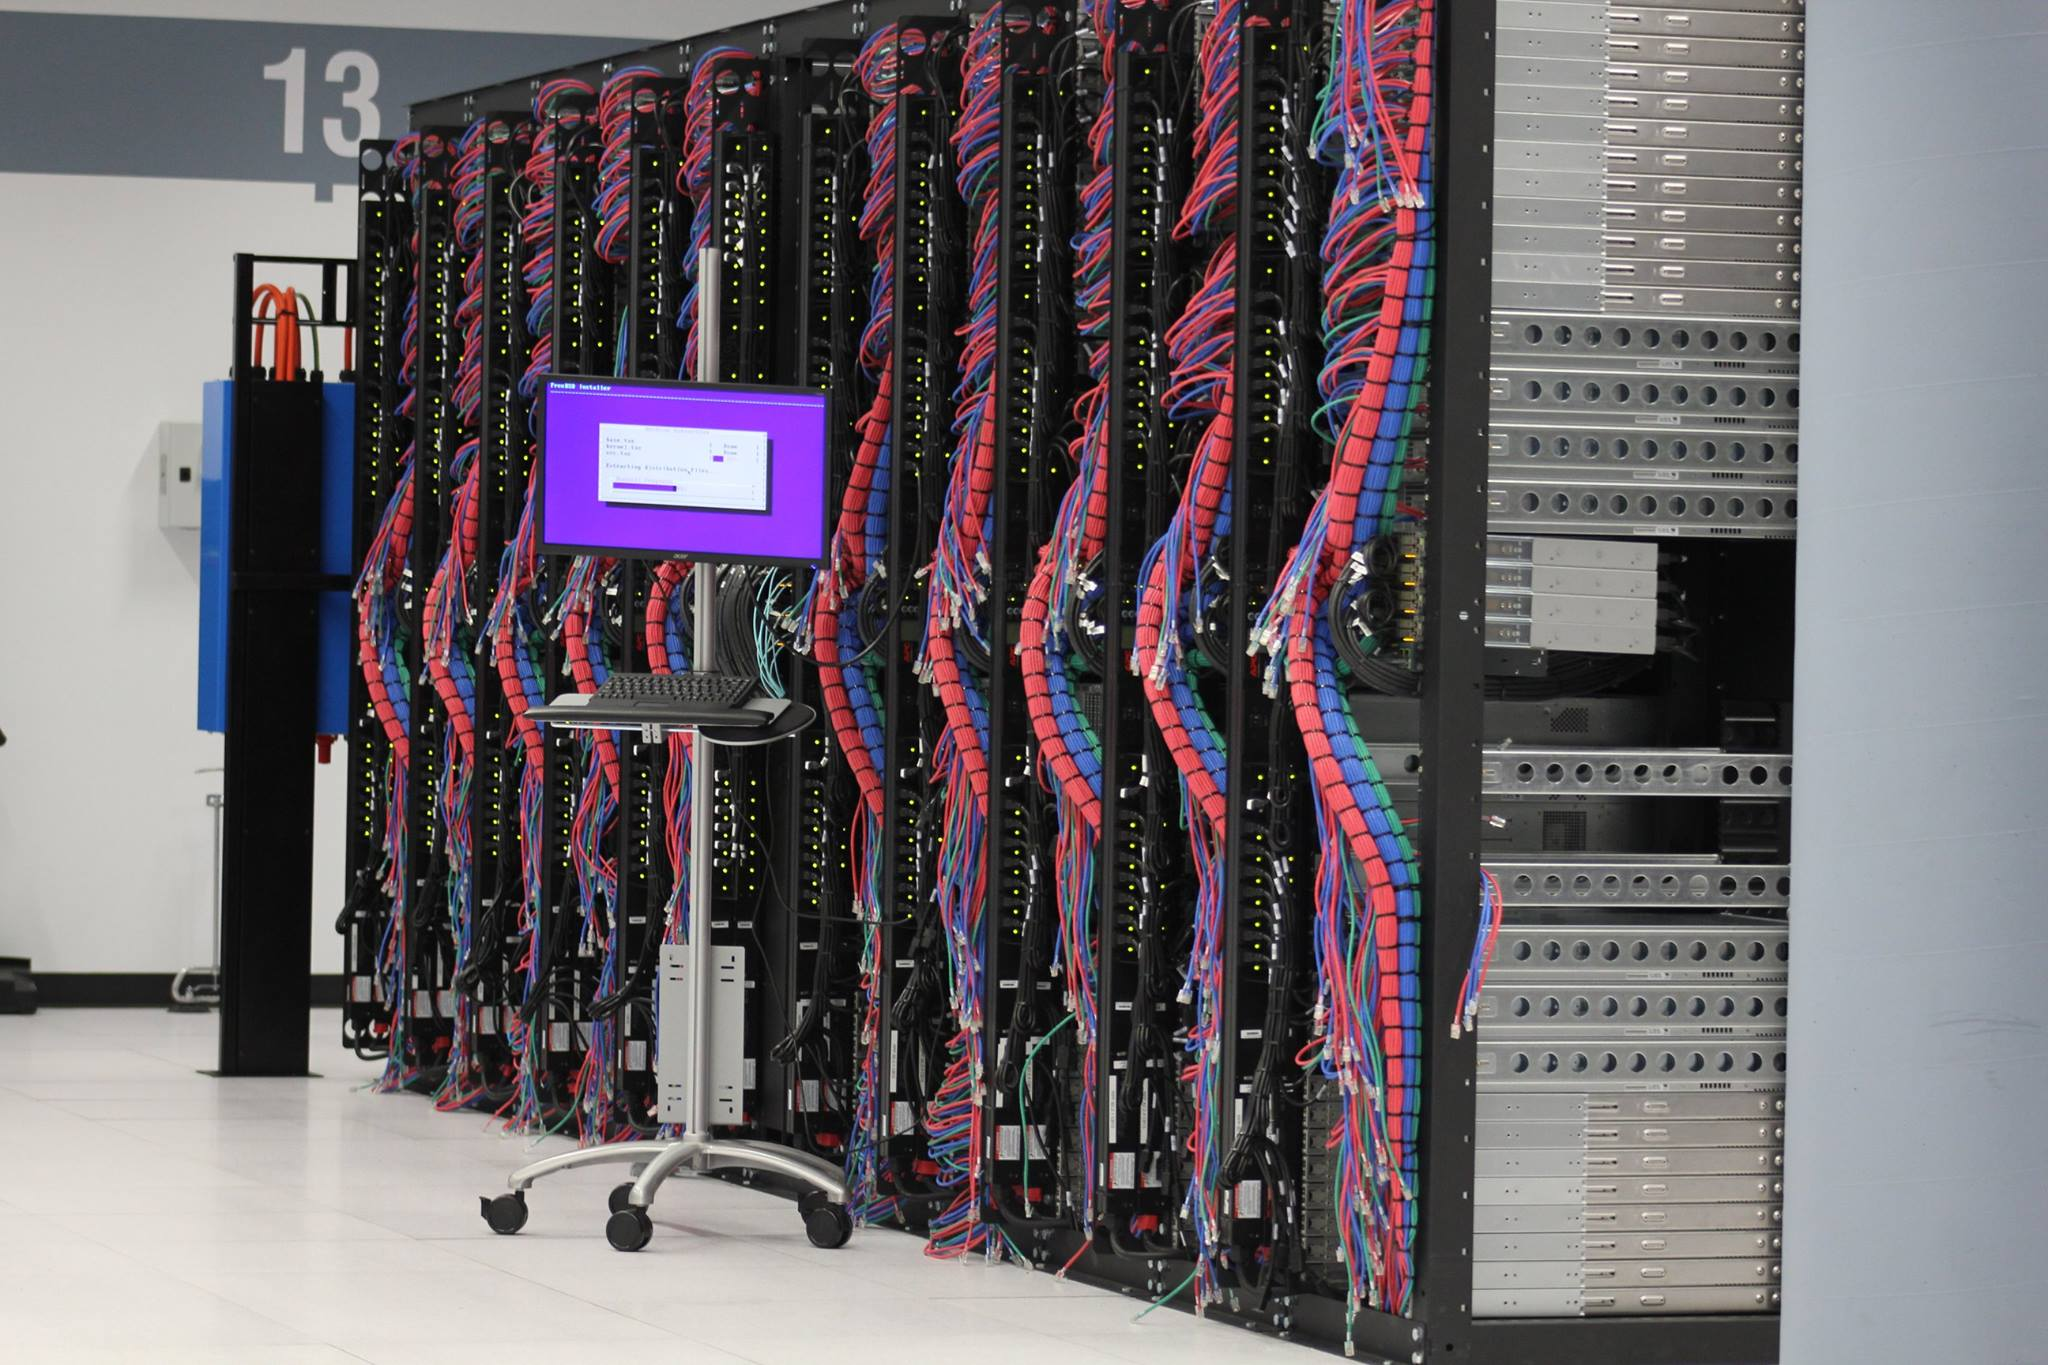 Ibm Opens First Cloud Data Center With Softlayer In Japan Wiring Is Opening Its Located Tokyo The Company Had Previously Announced